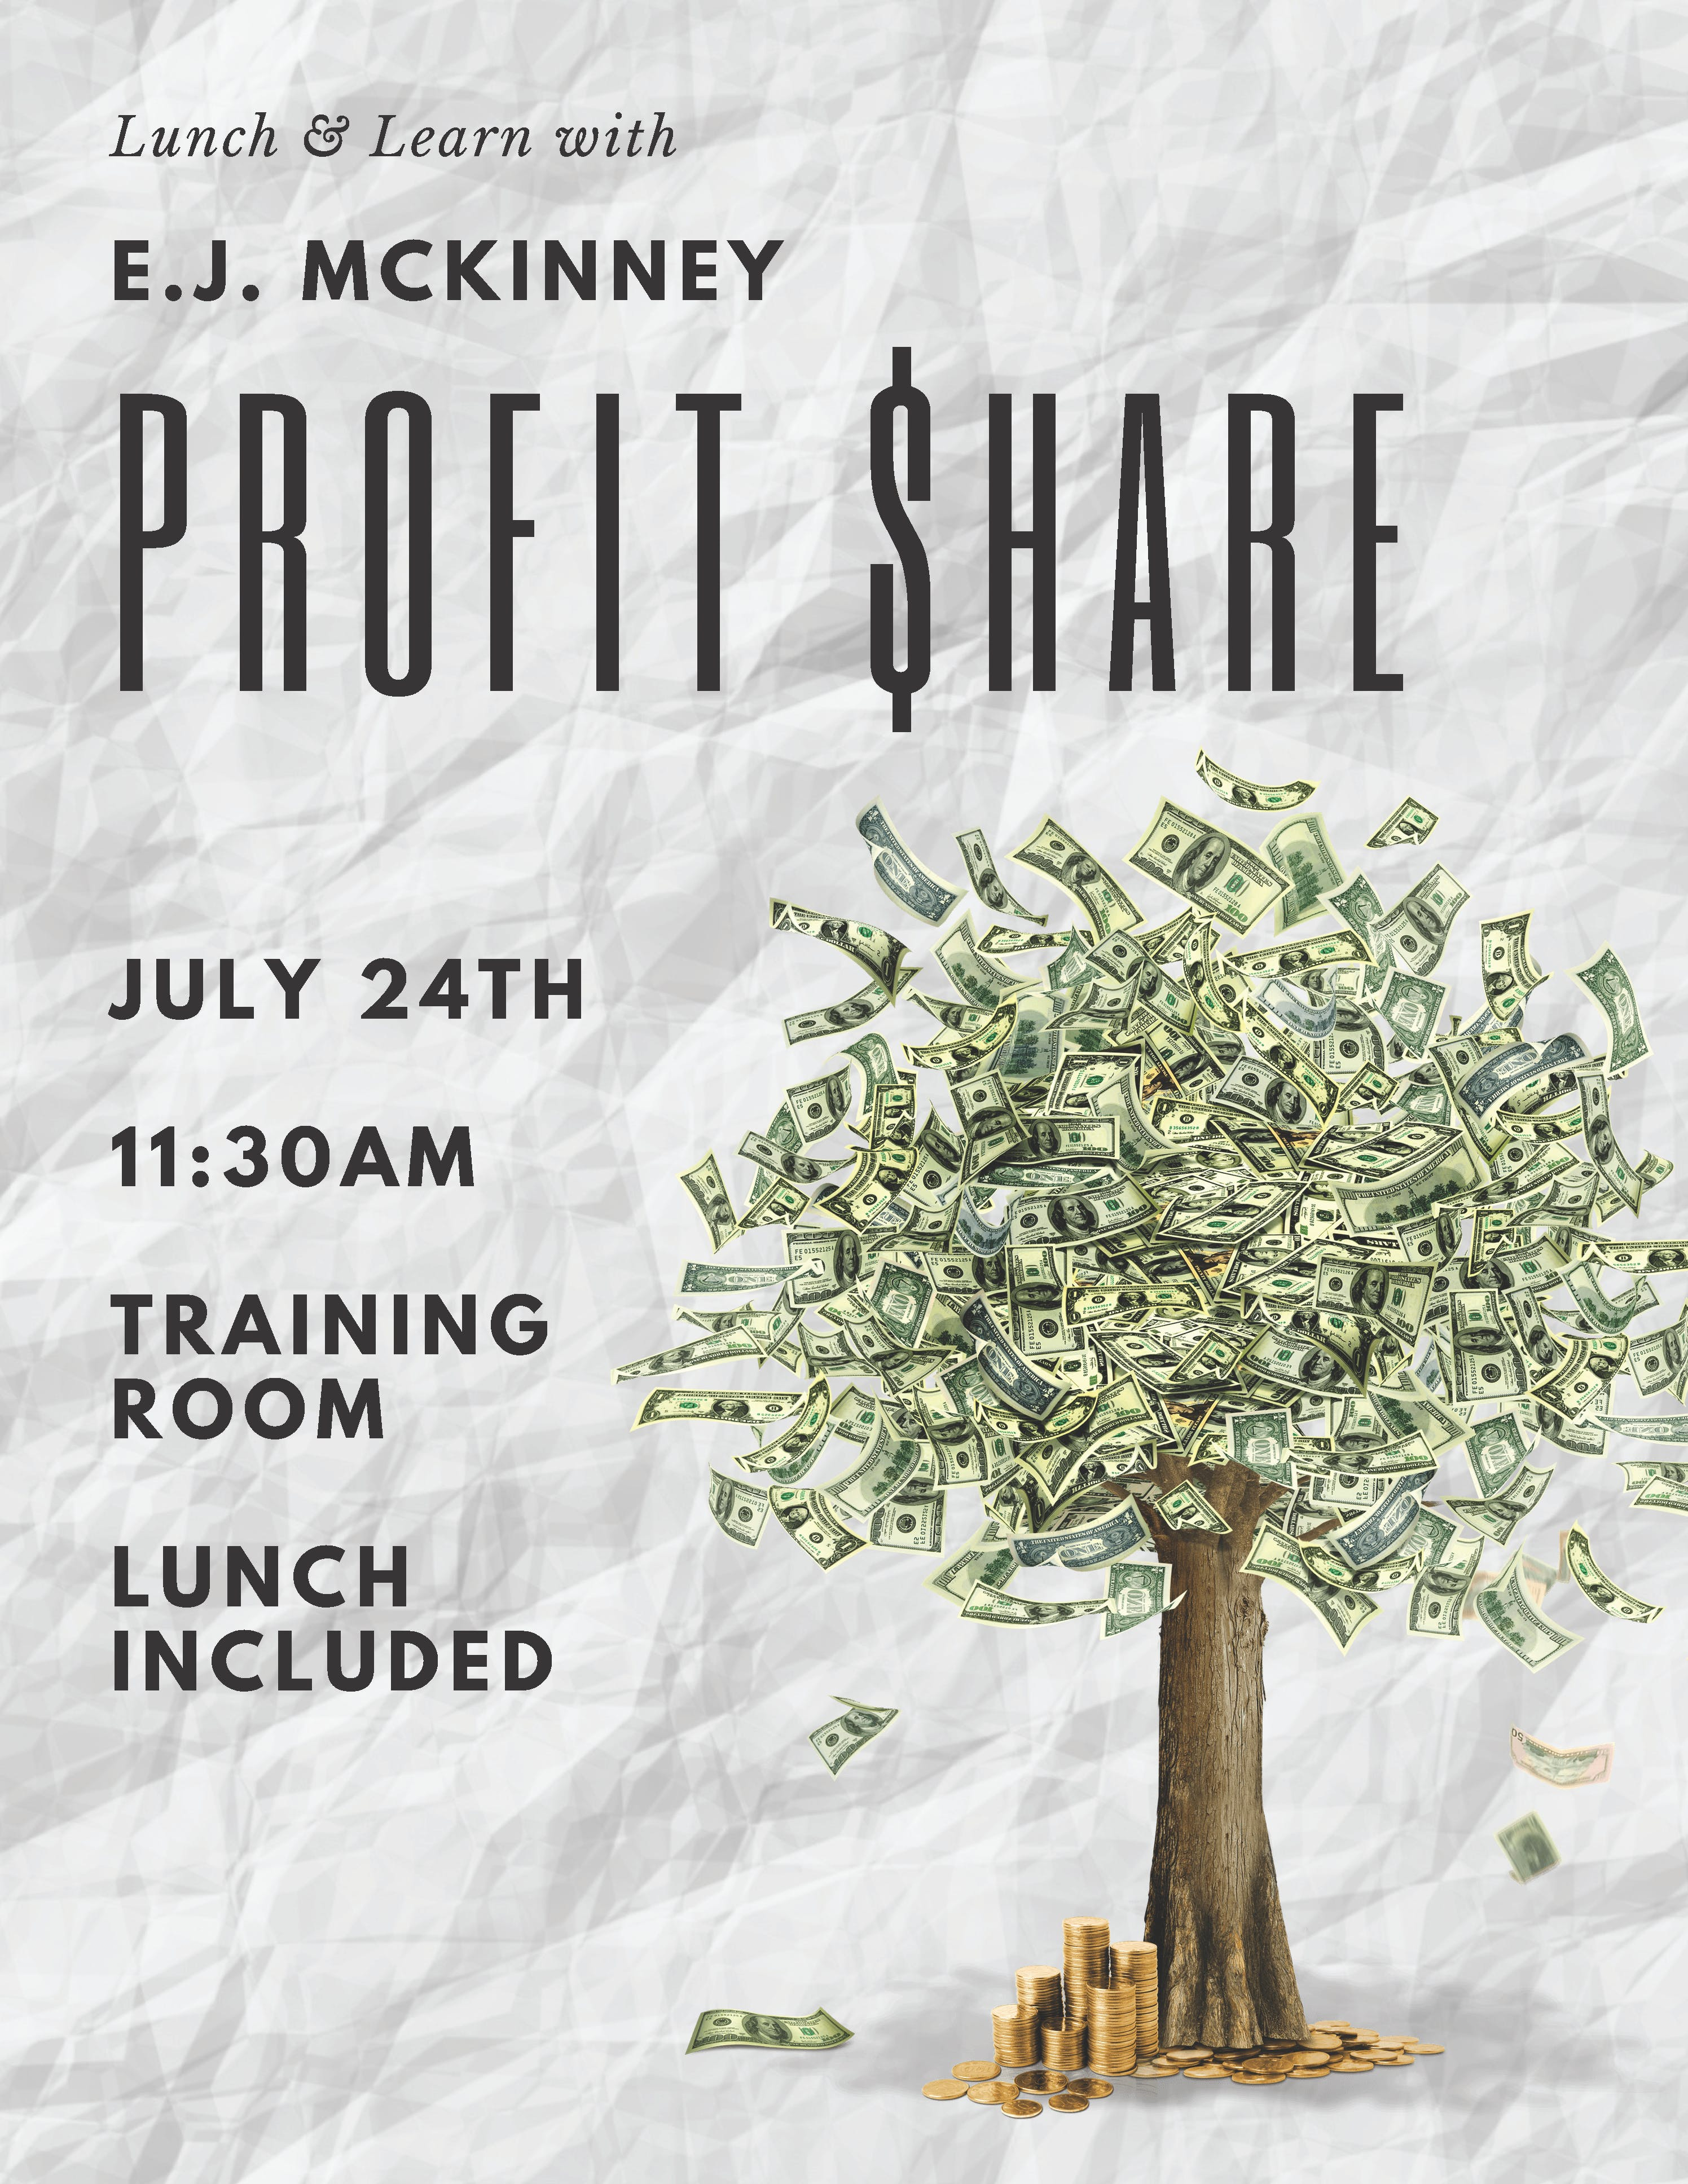 Lunch & Learn: Profit Share with E.J. McKinney!